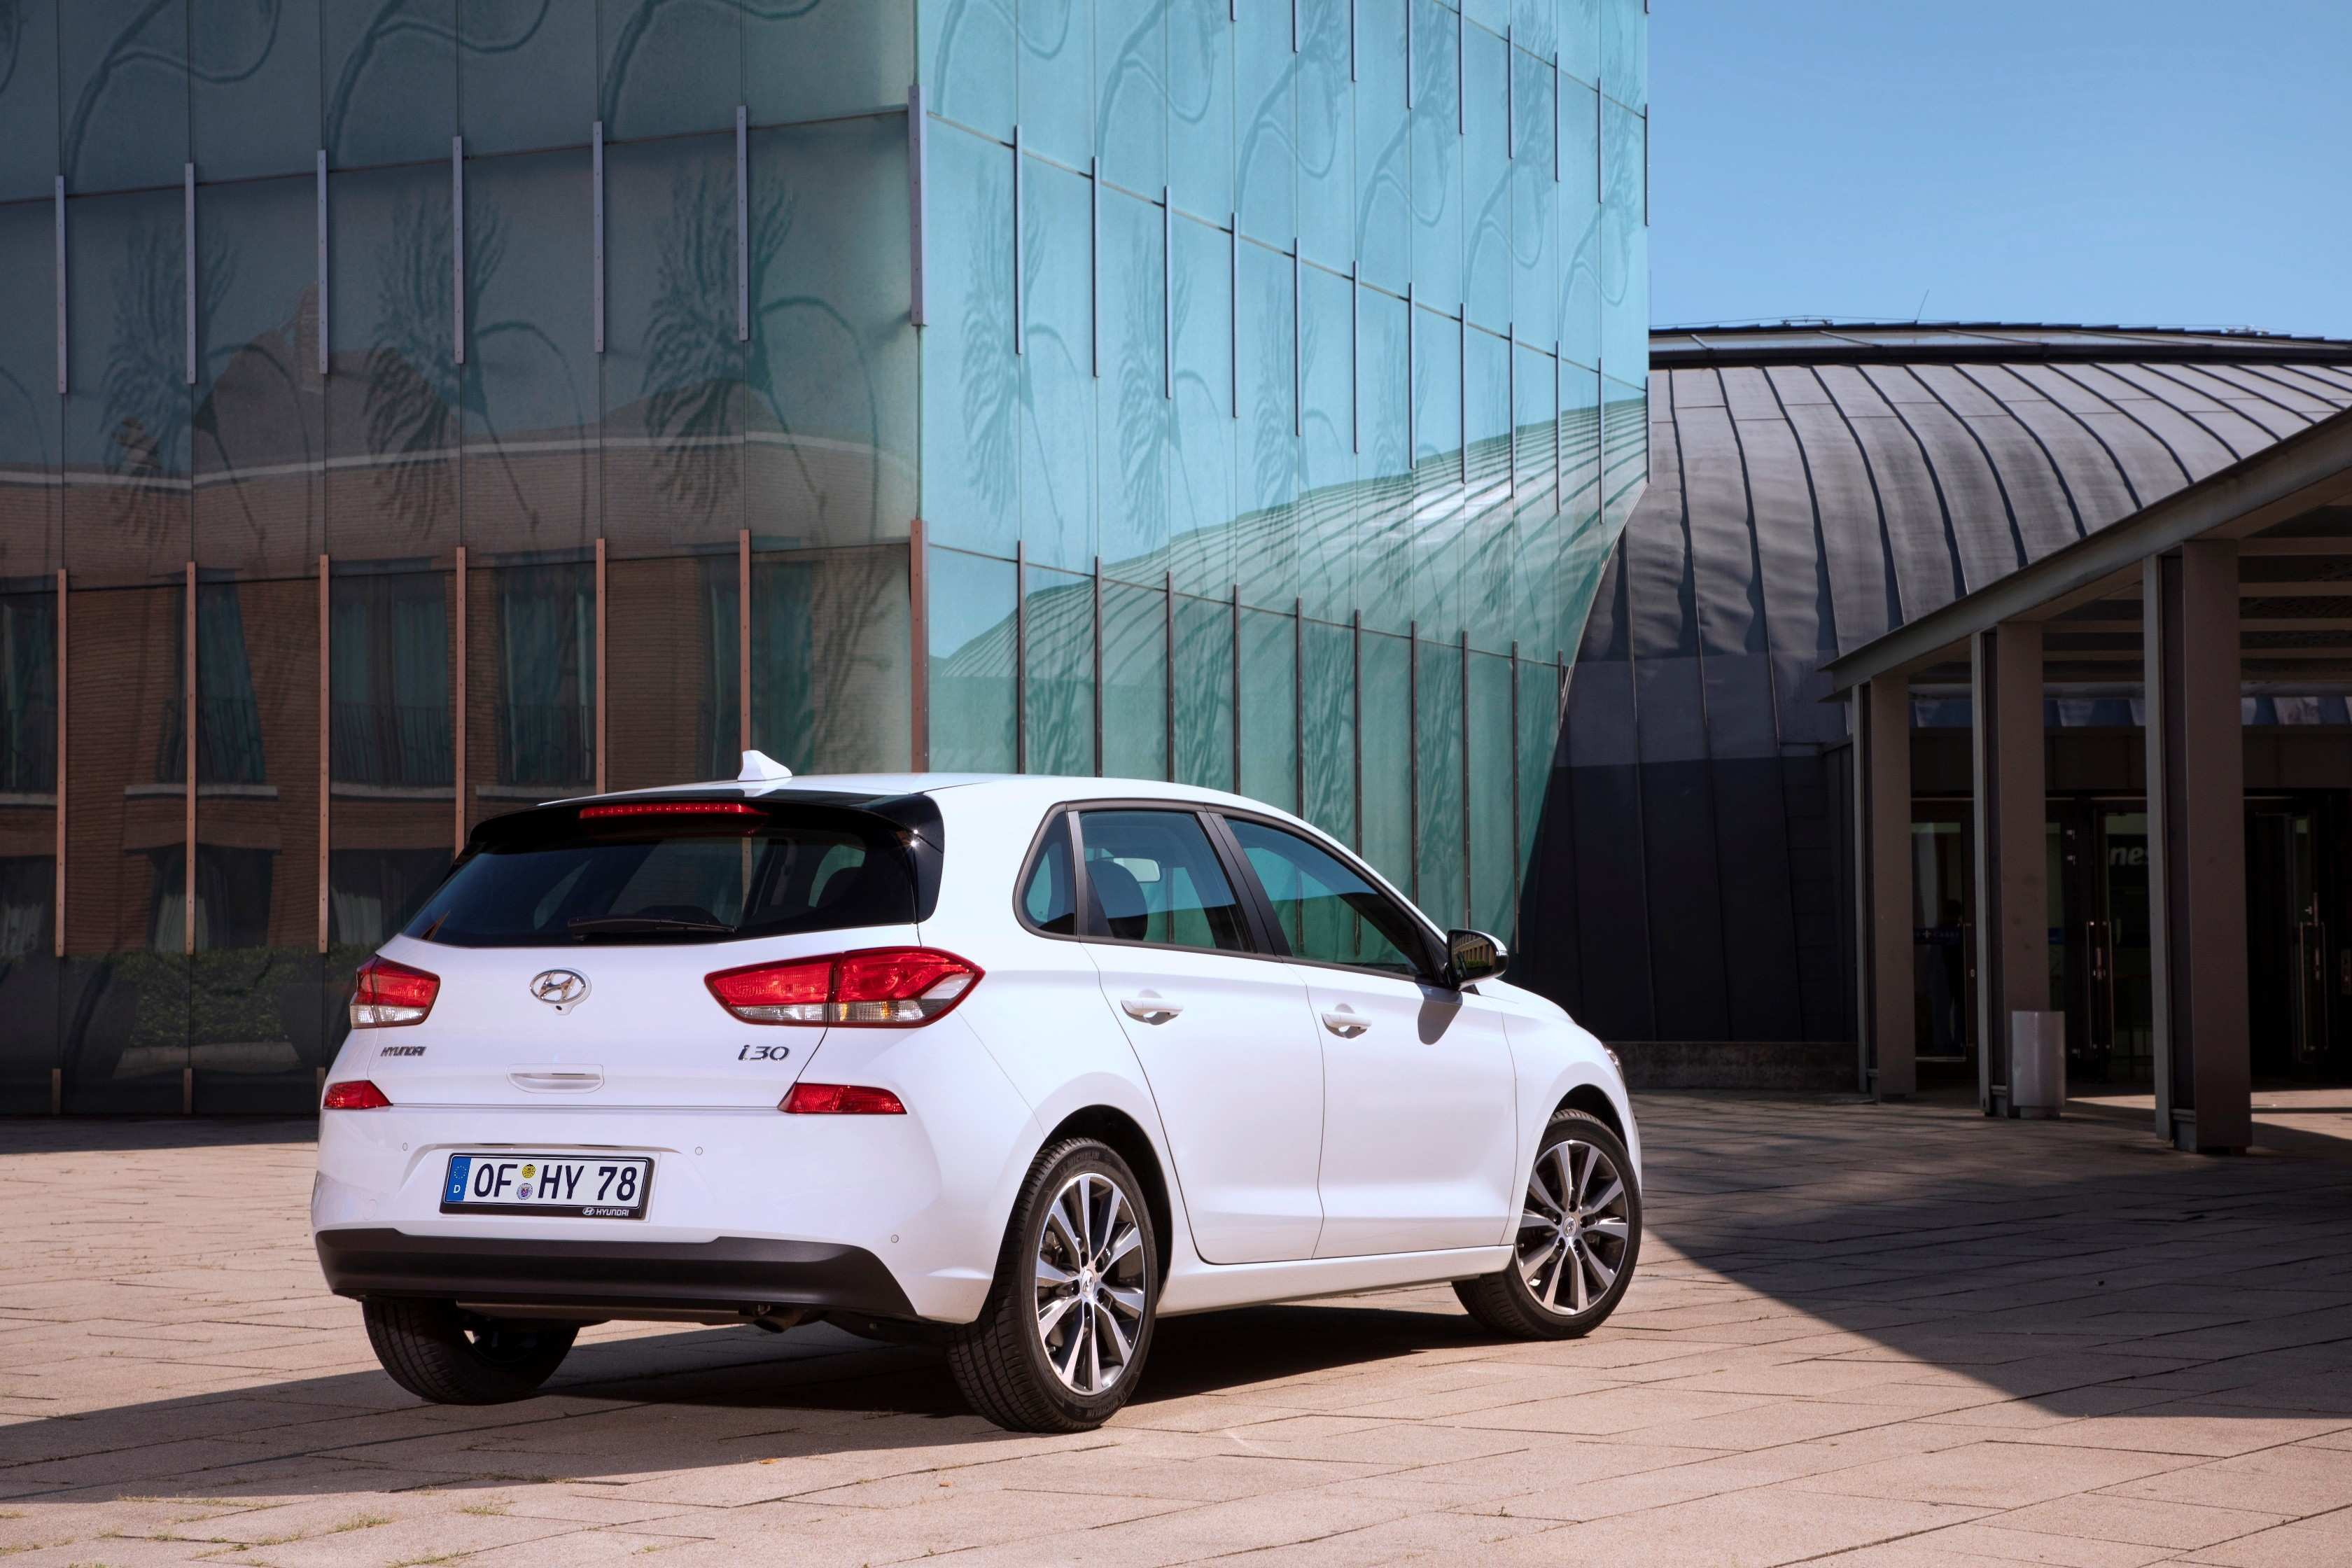 47 New 2019 Hyundai I30 Model